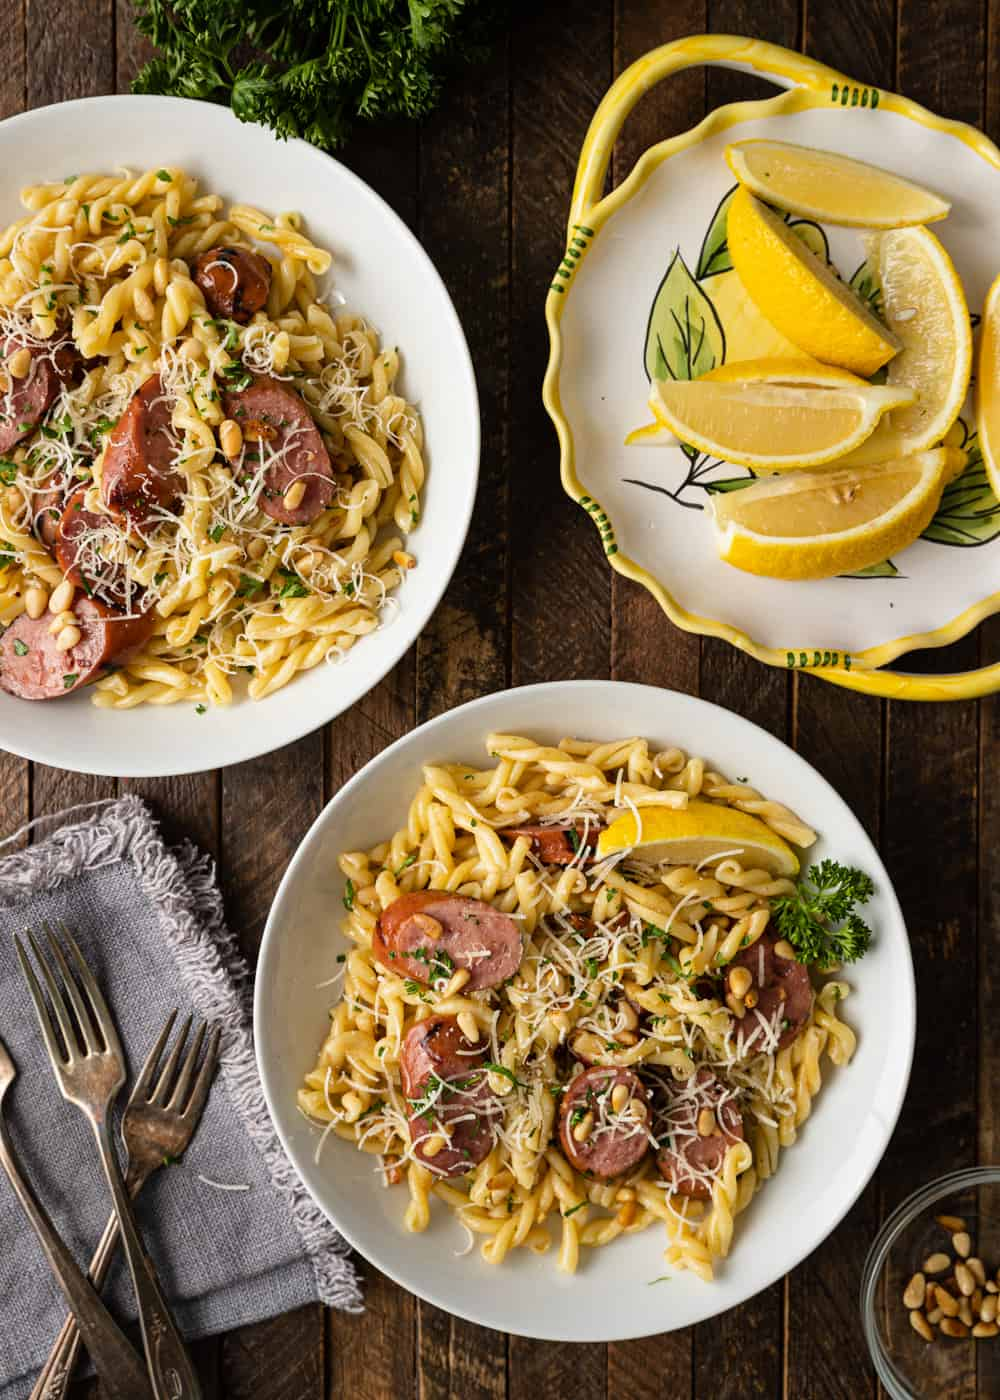 plates of Smoked Sausage and Browned Butter Pasta with lemons